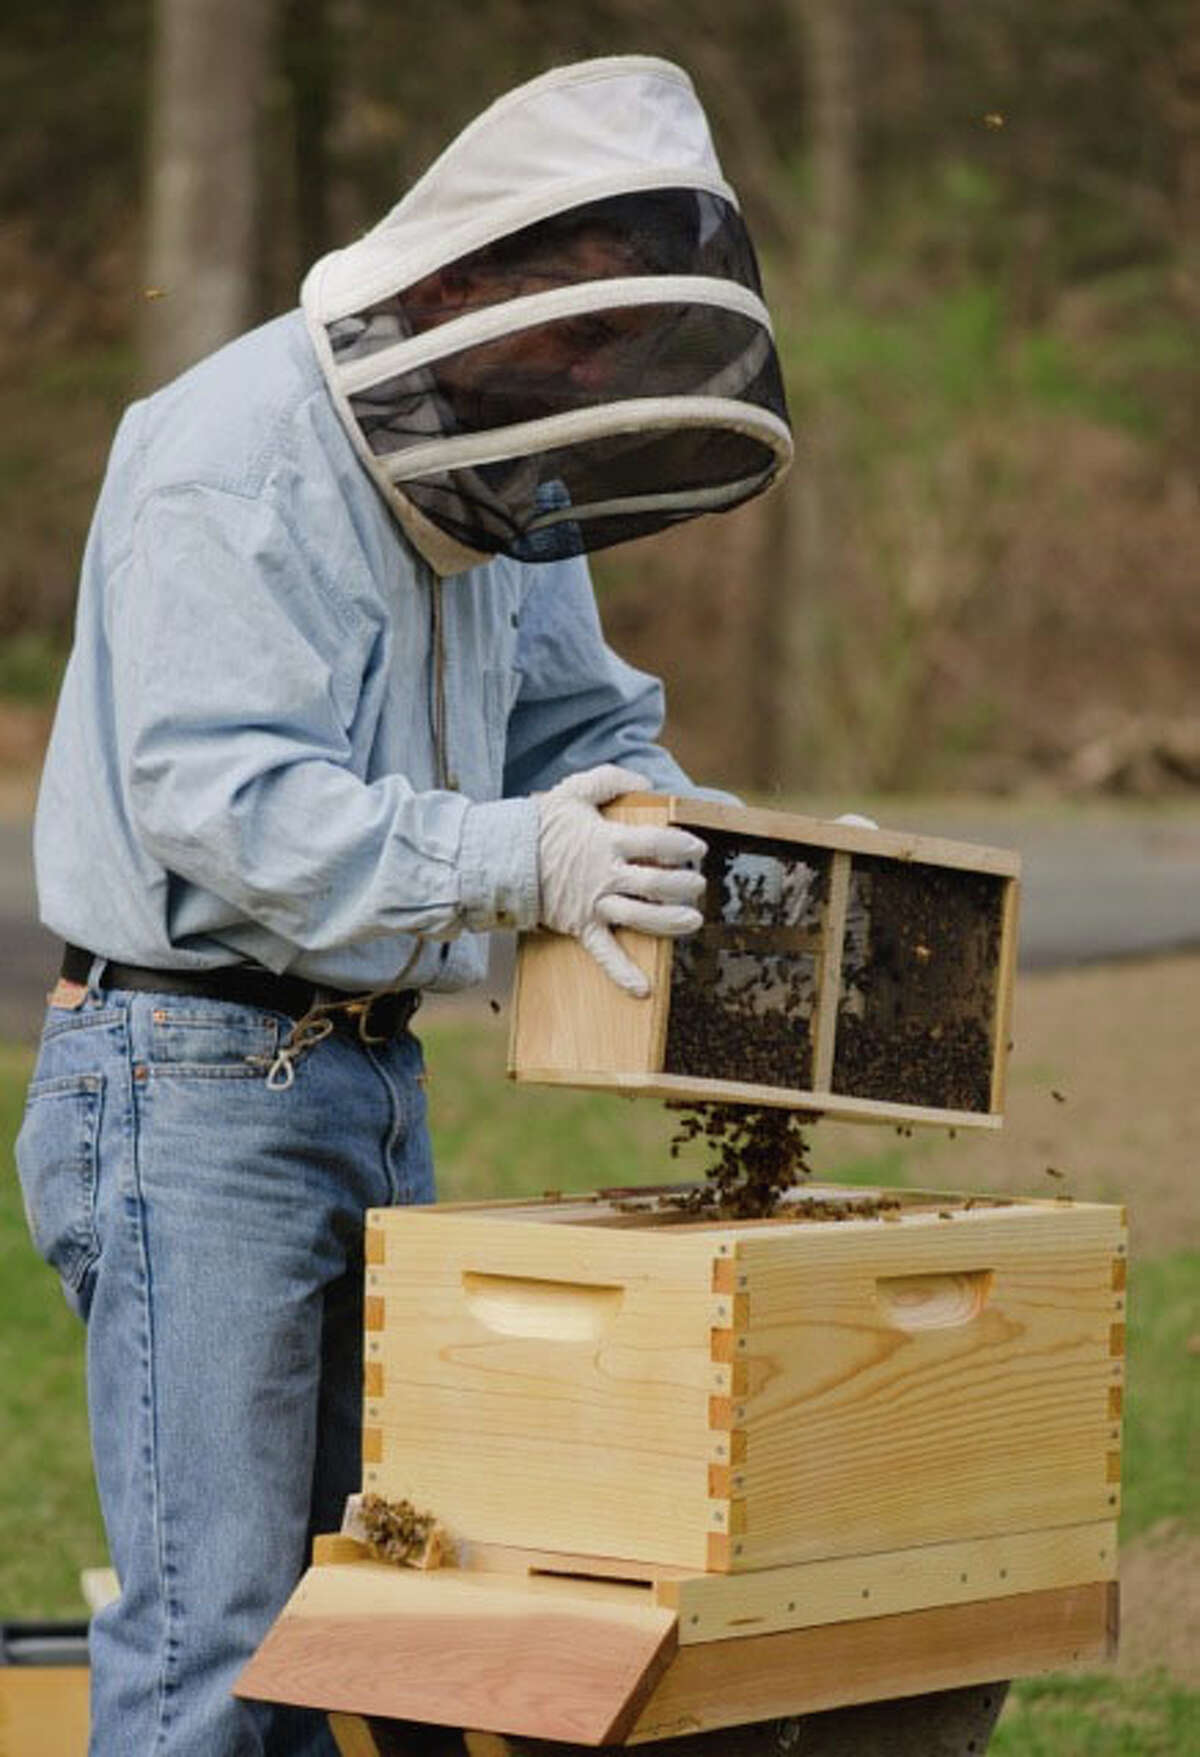 Danbury Fire Lt. Bill Lounsbury unwinds from the stress of his job by keeping honeybees and tending hives for other people who keep them.